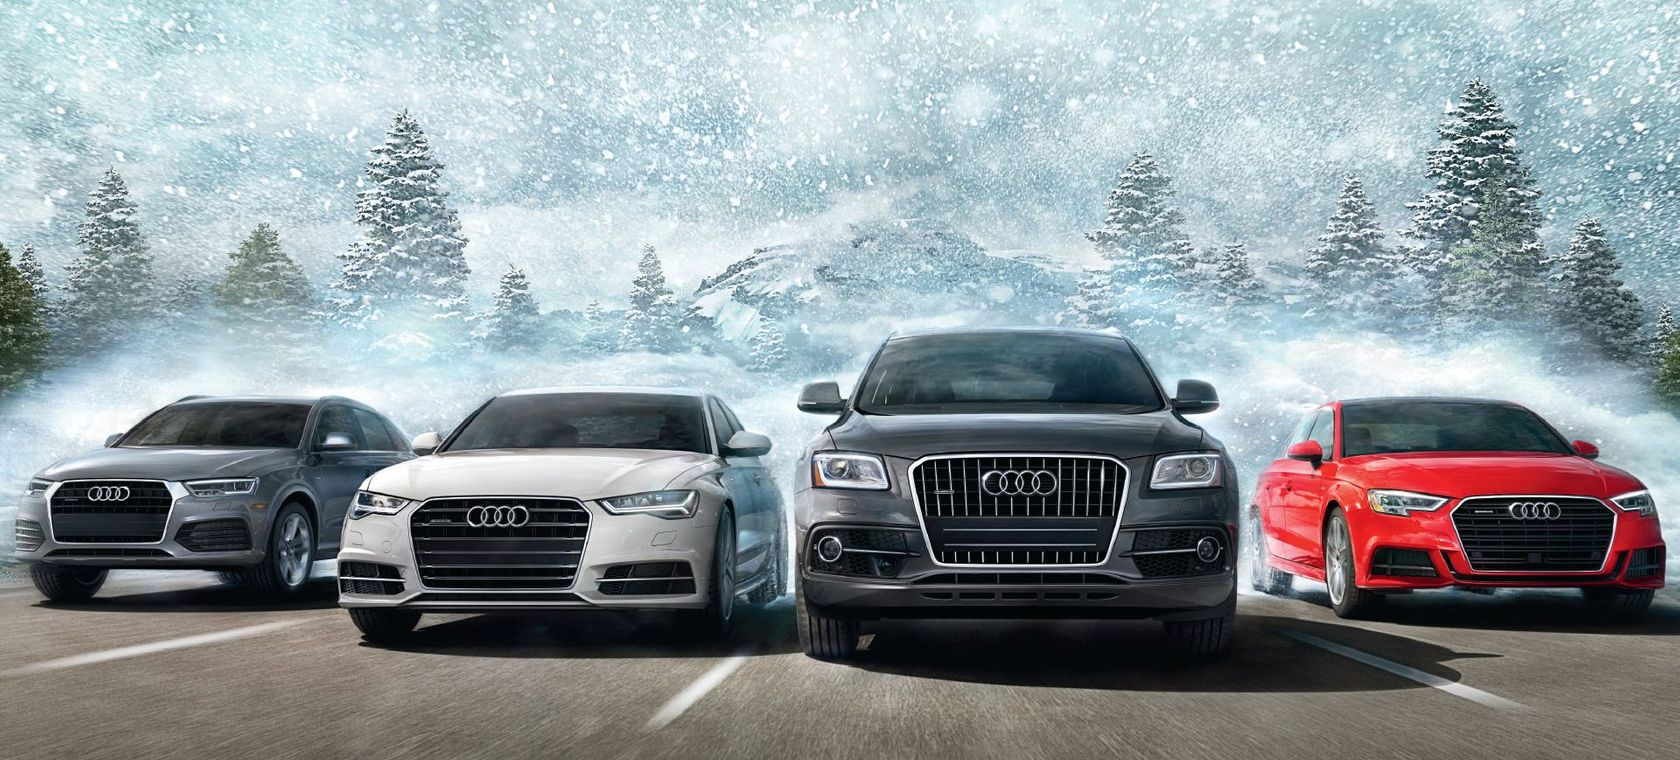 Audi model lineup with quattro® all-wheel drive